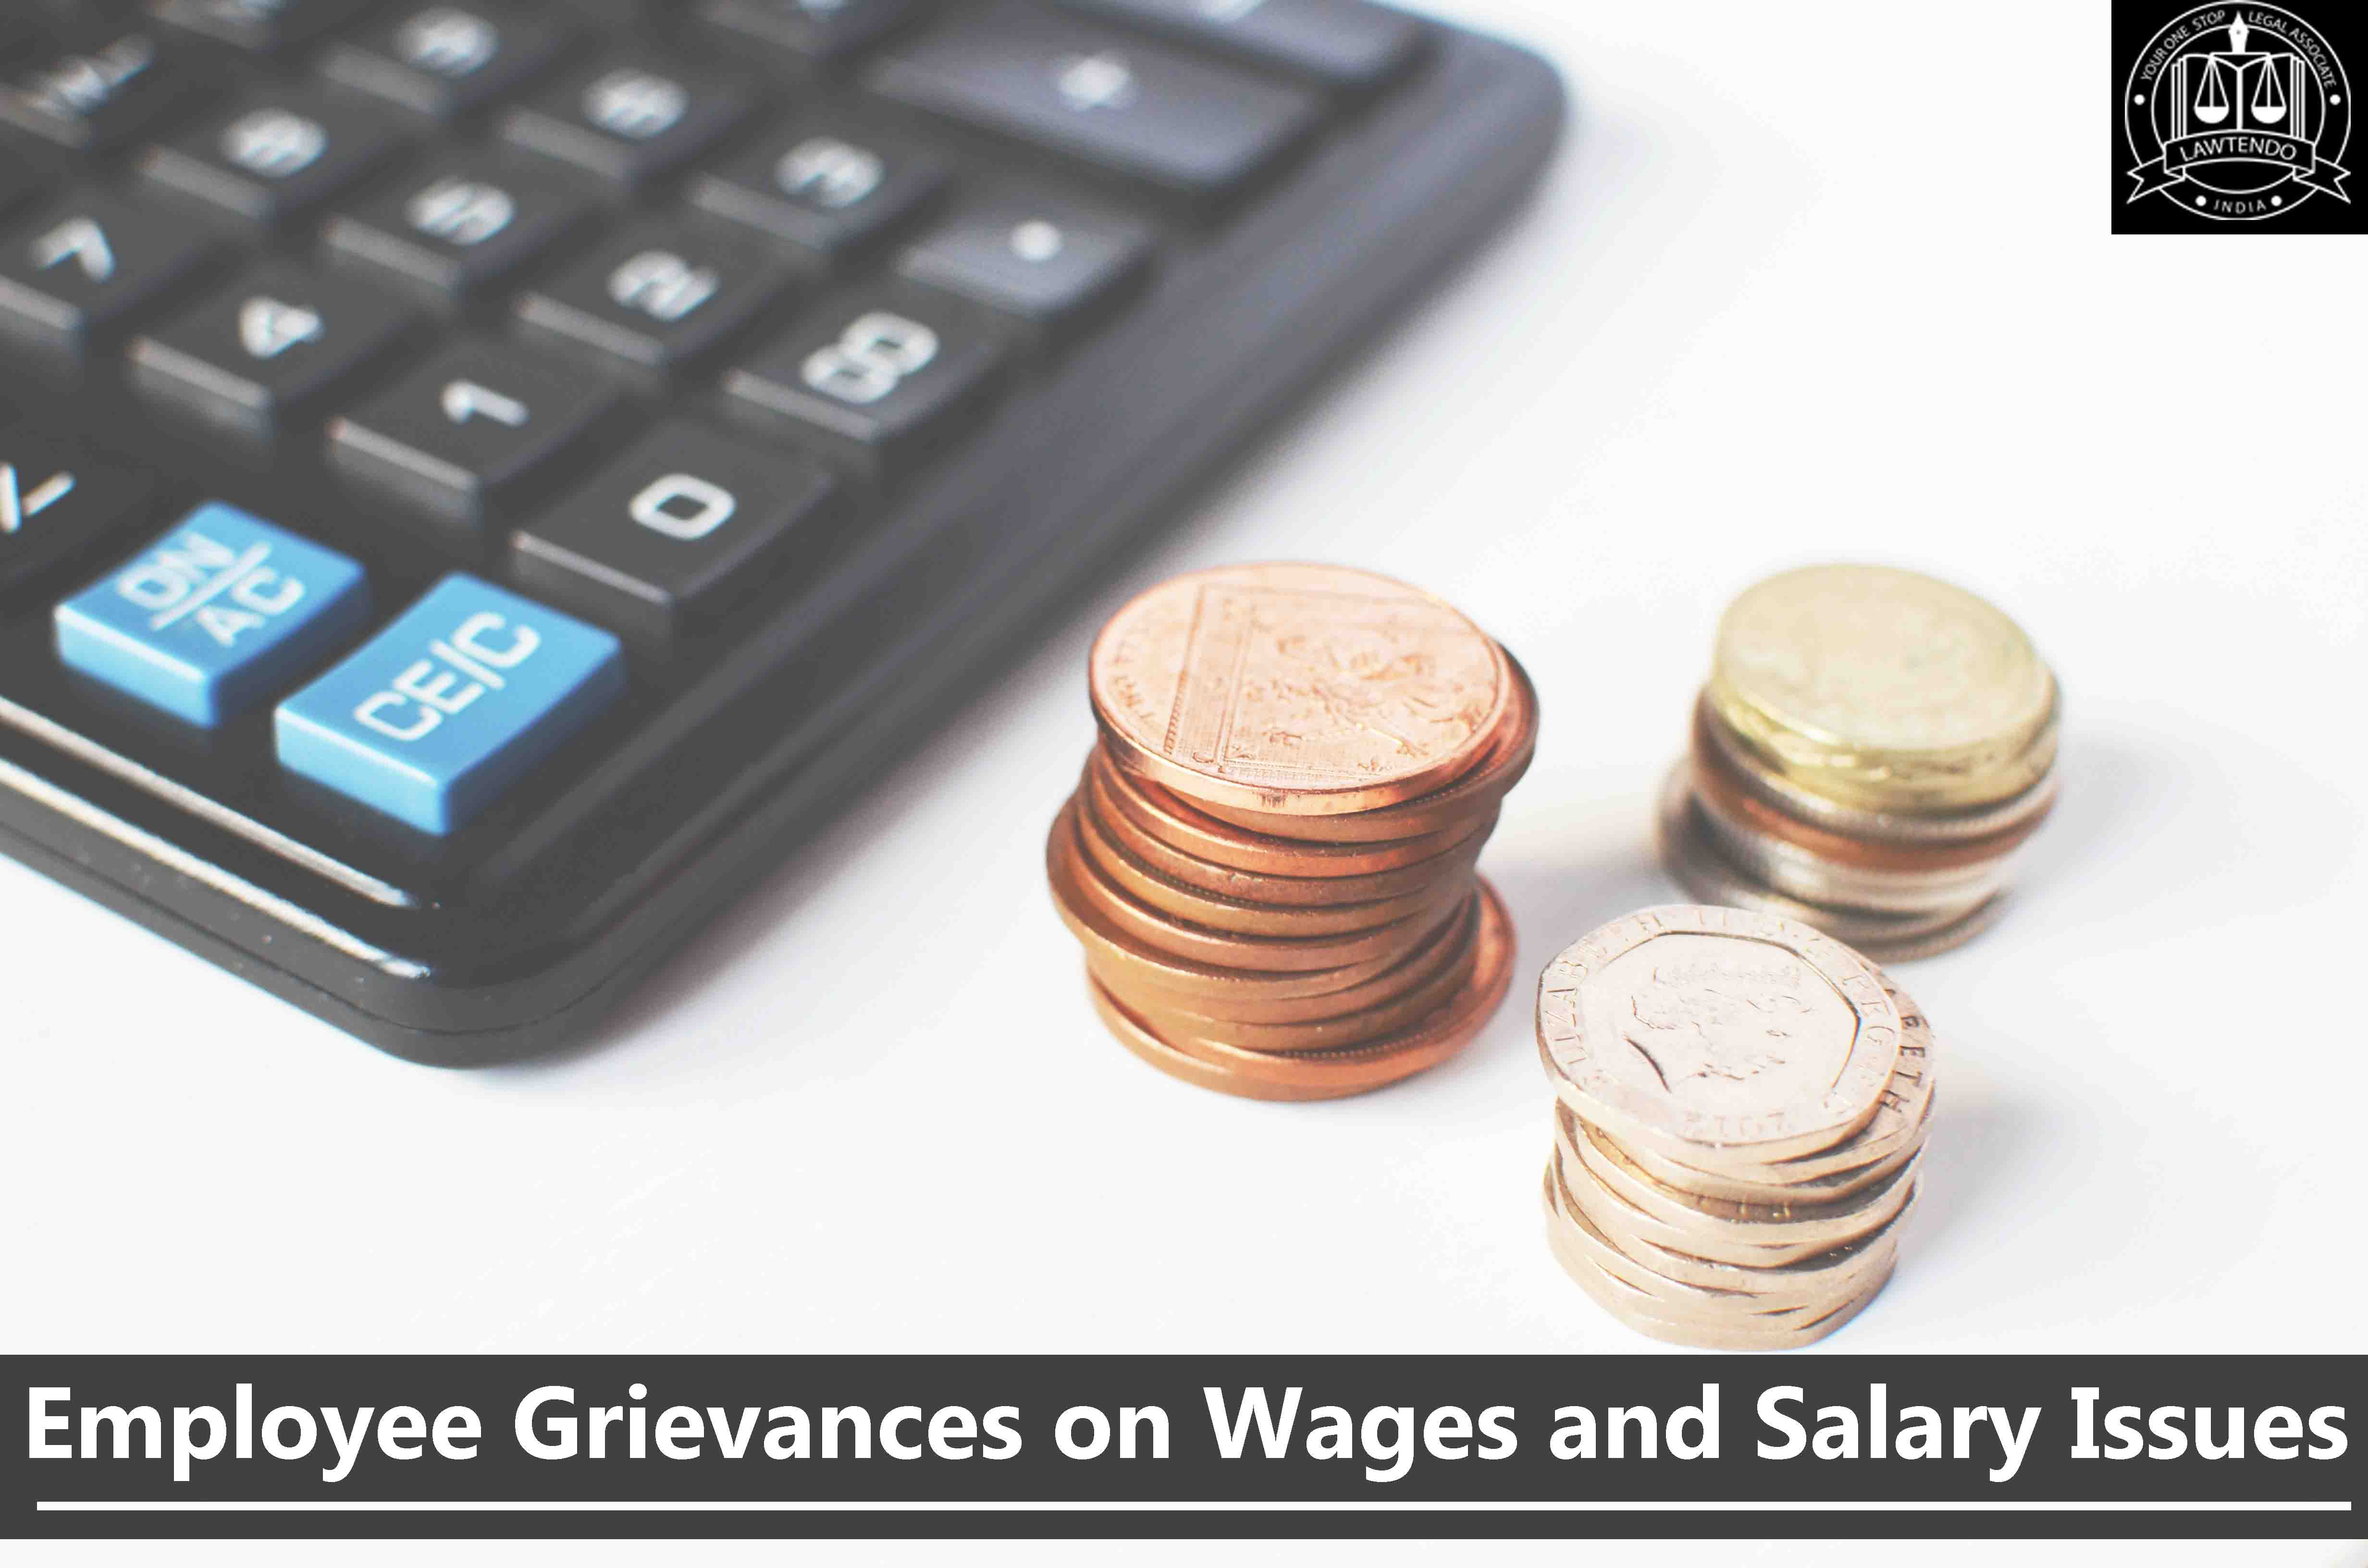 Employee Grievances on Wages and Salary Issues